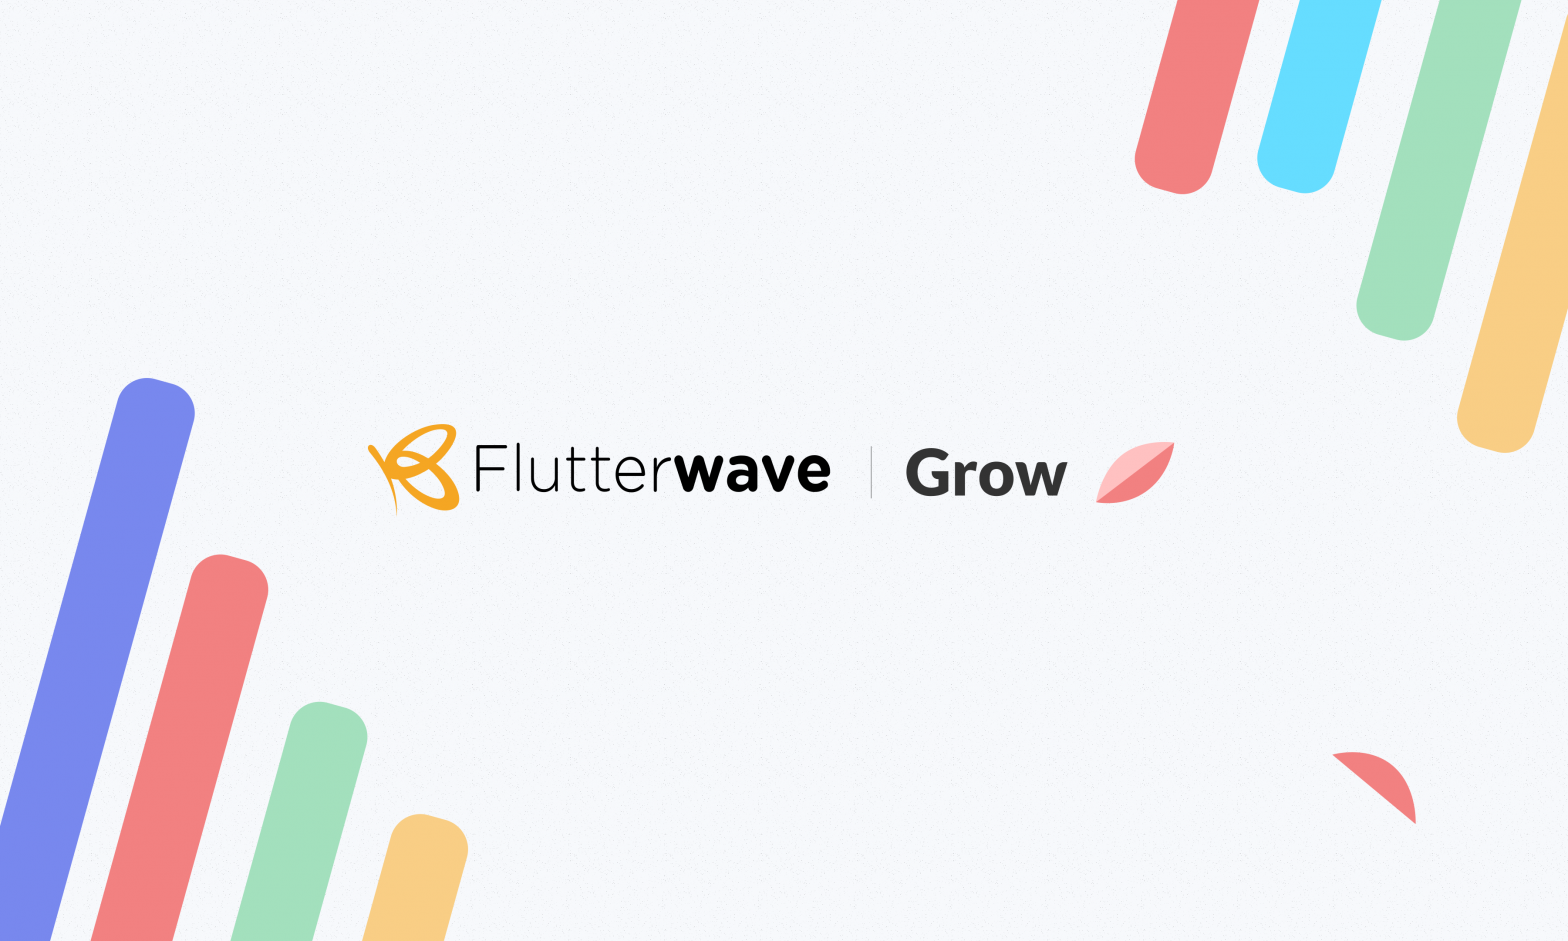 Flutterwave Grow: Register & grow your business without hassles